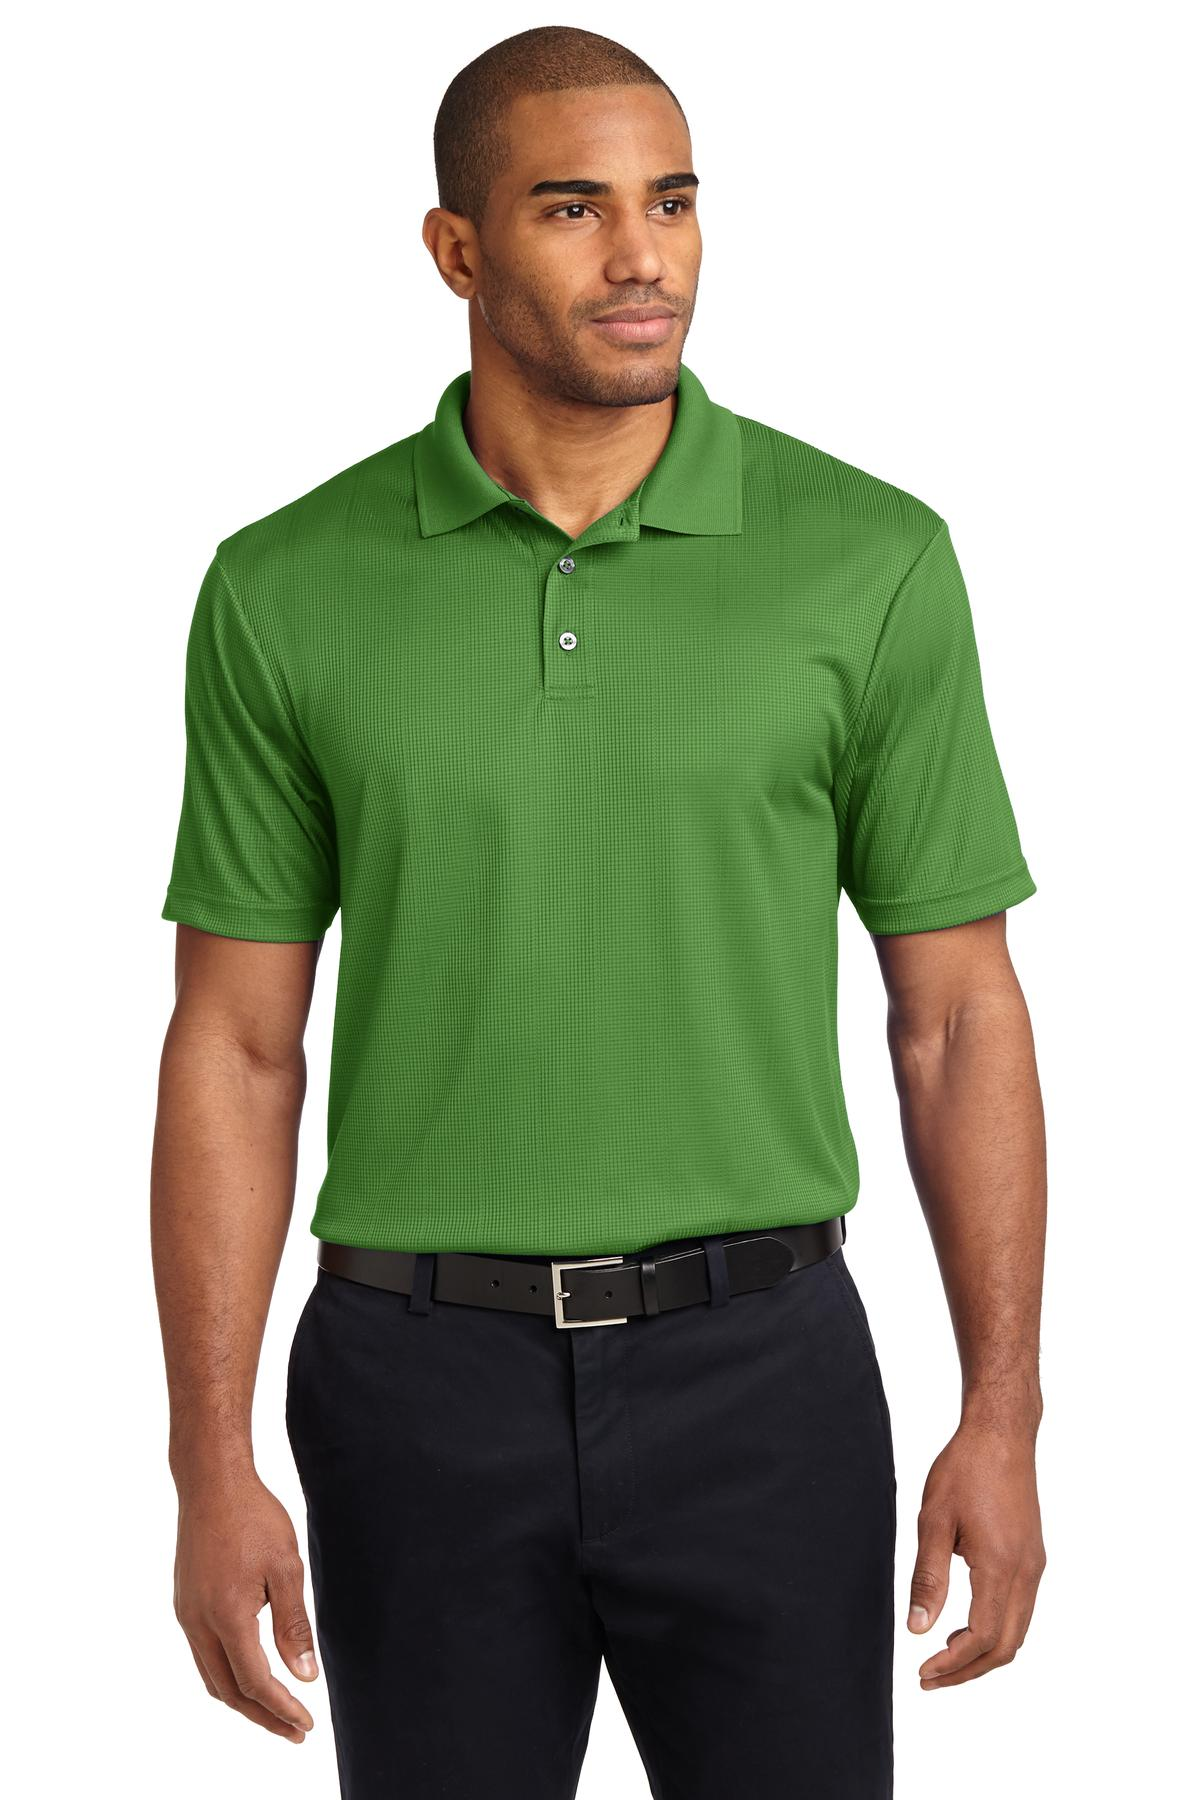 Neon Yellow Port Authority Silk Touch Performance Polo.